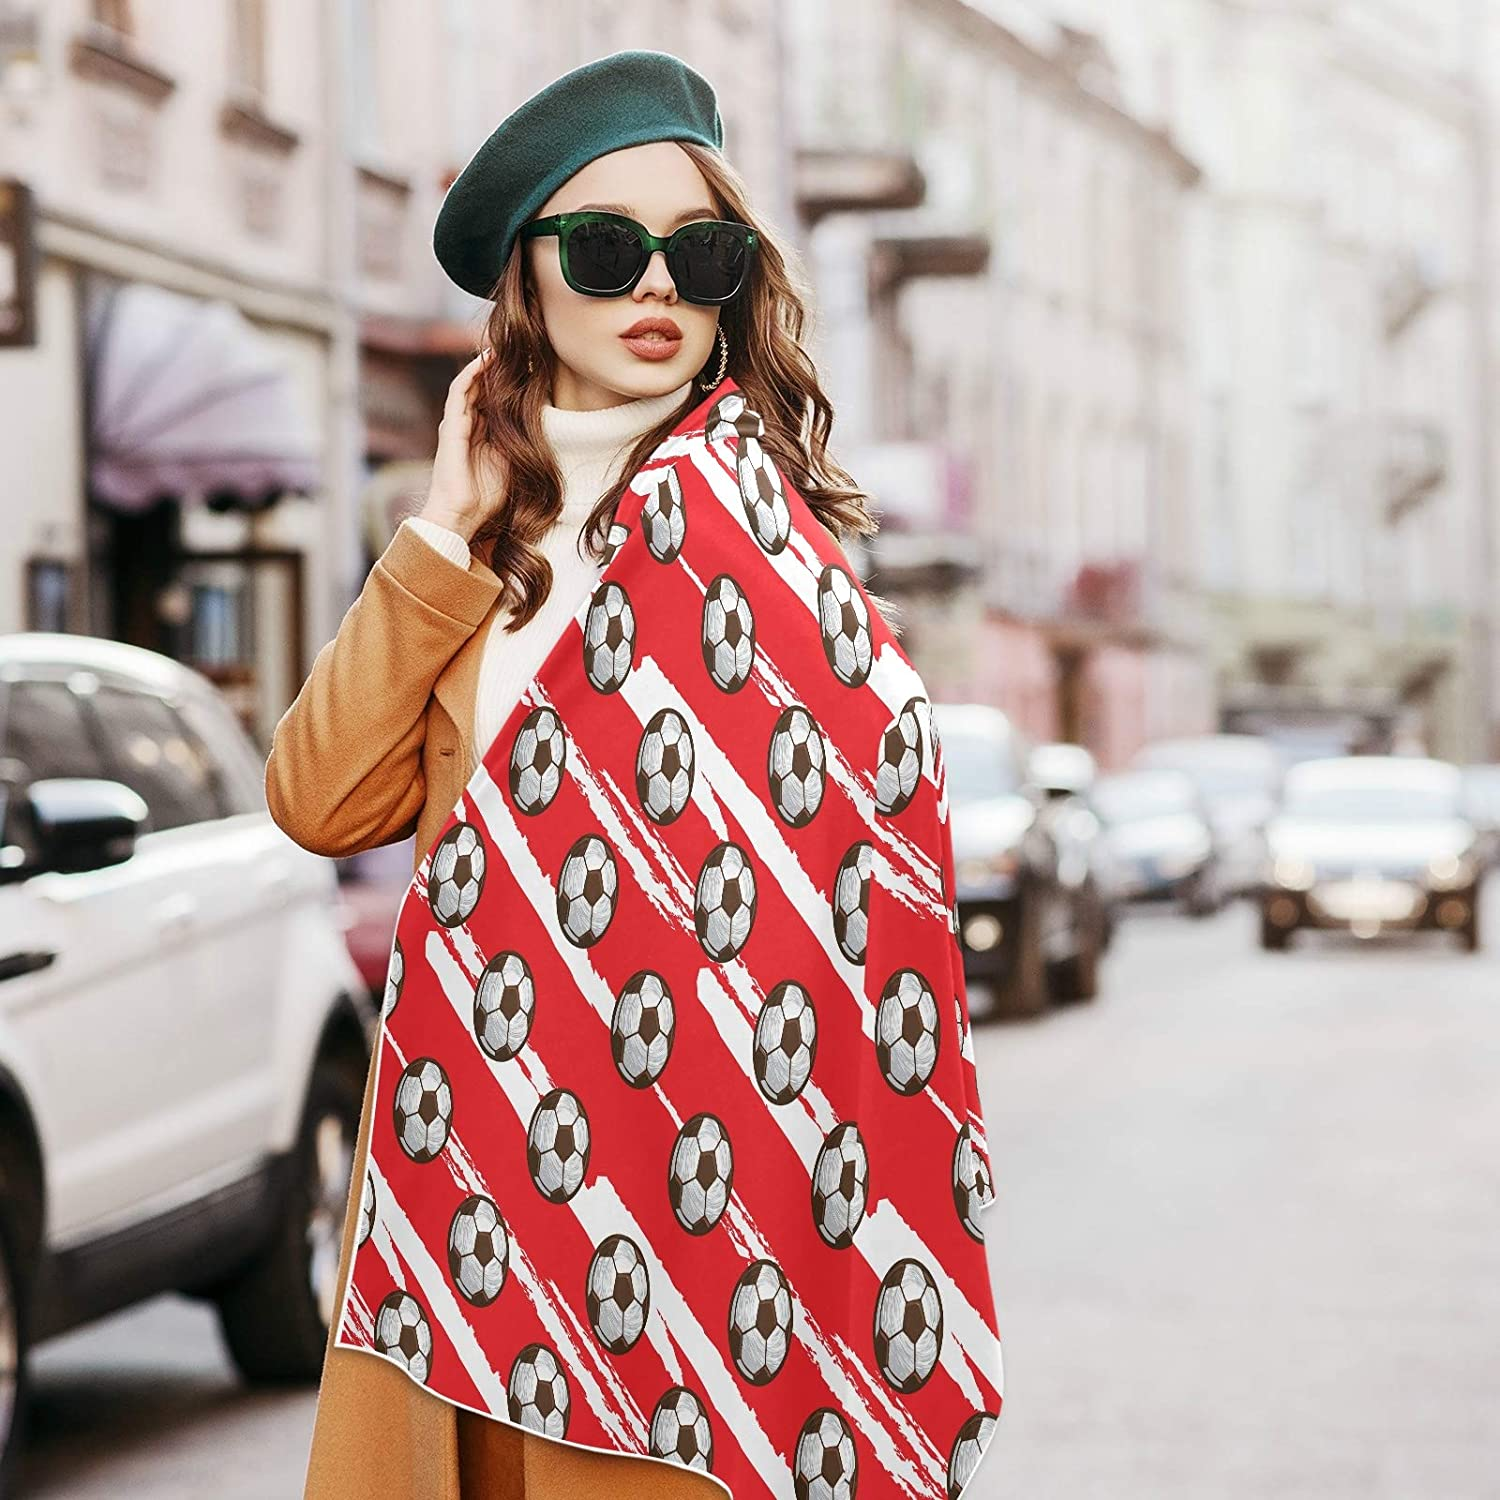 Scarf for Women and Men Football Soccer Red White Shawls Blanket Scarf wraps Soft Thick Winter Large Scarves Lightweight